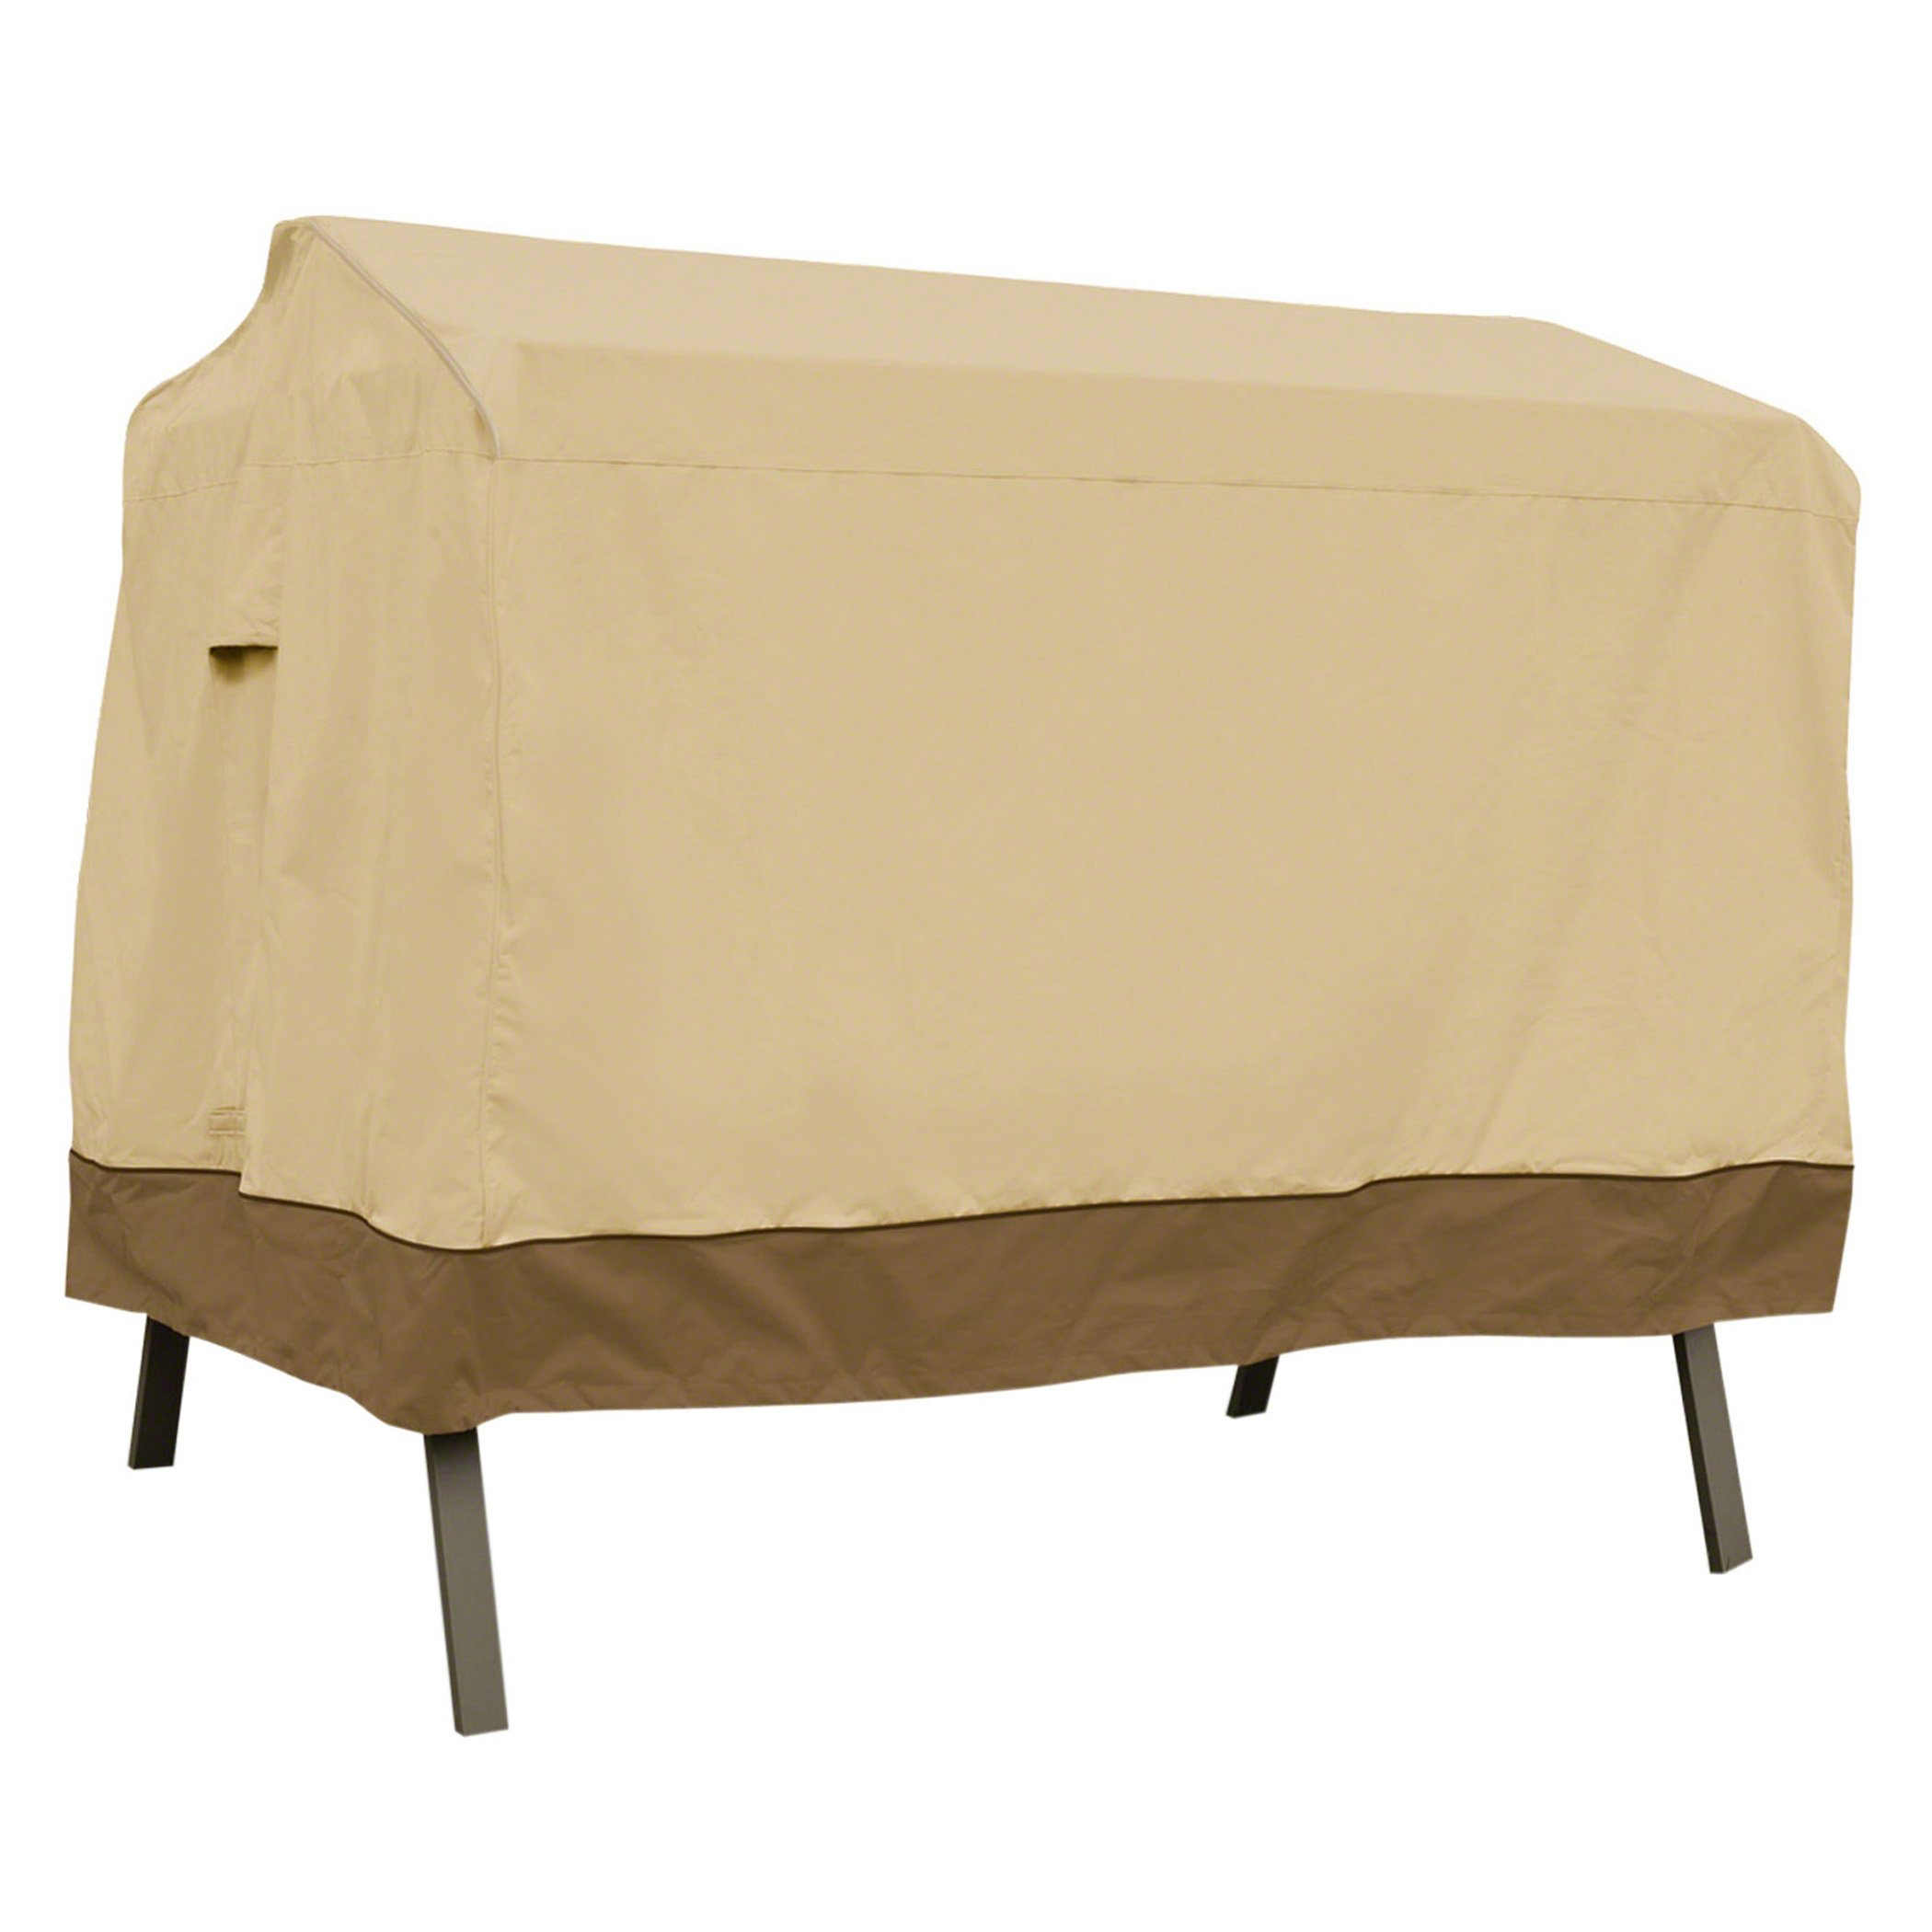 Classic Accessories Veranda 2-Seater Patio Canopy Swing Cover - Durable and Water Resistant Outdoor Furniture Cover (72962)